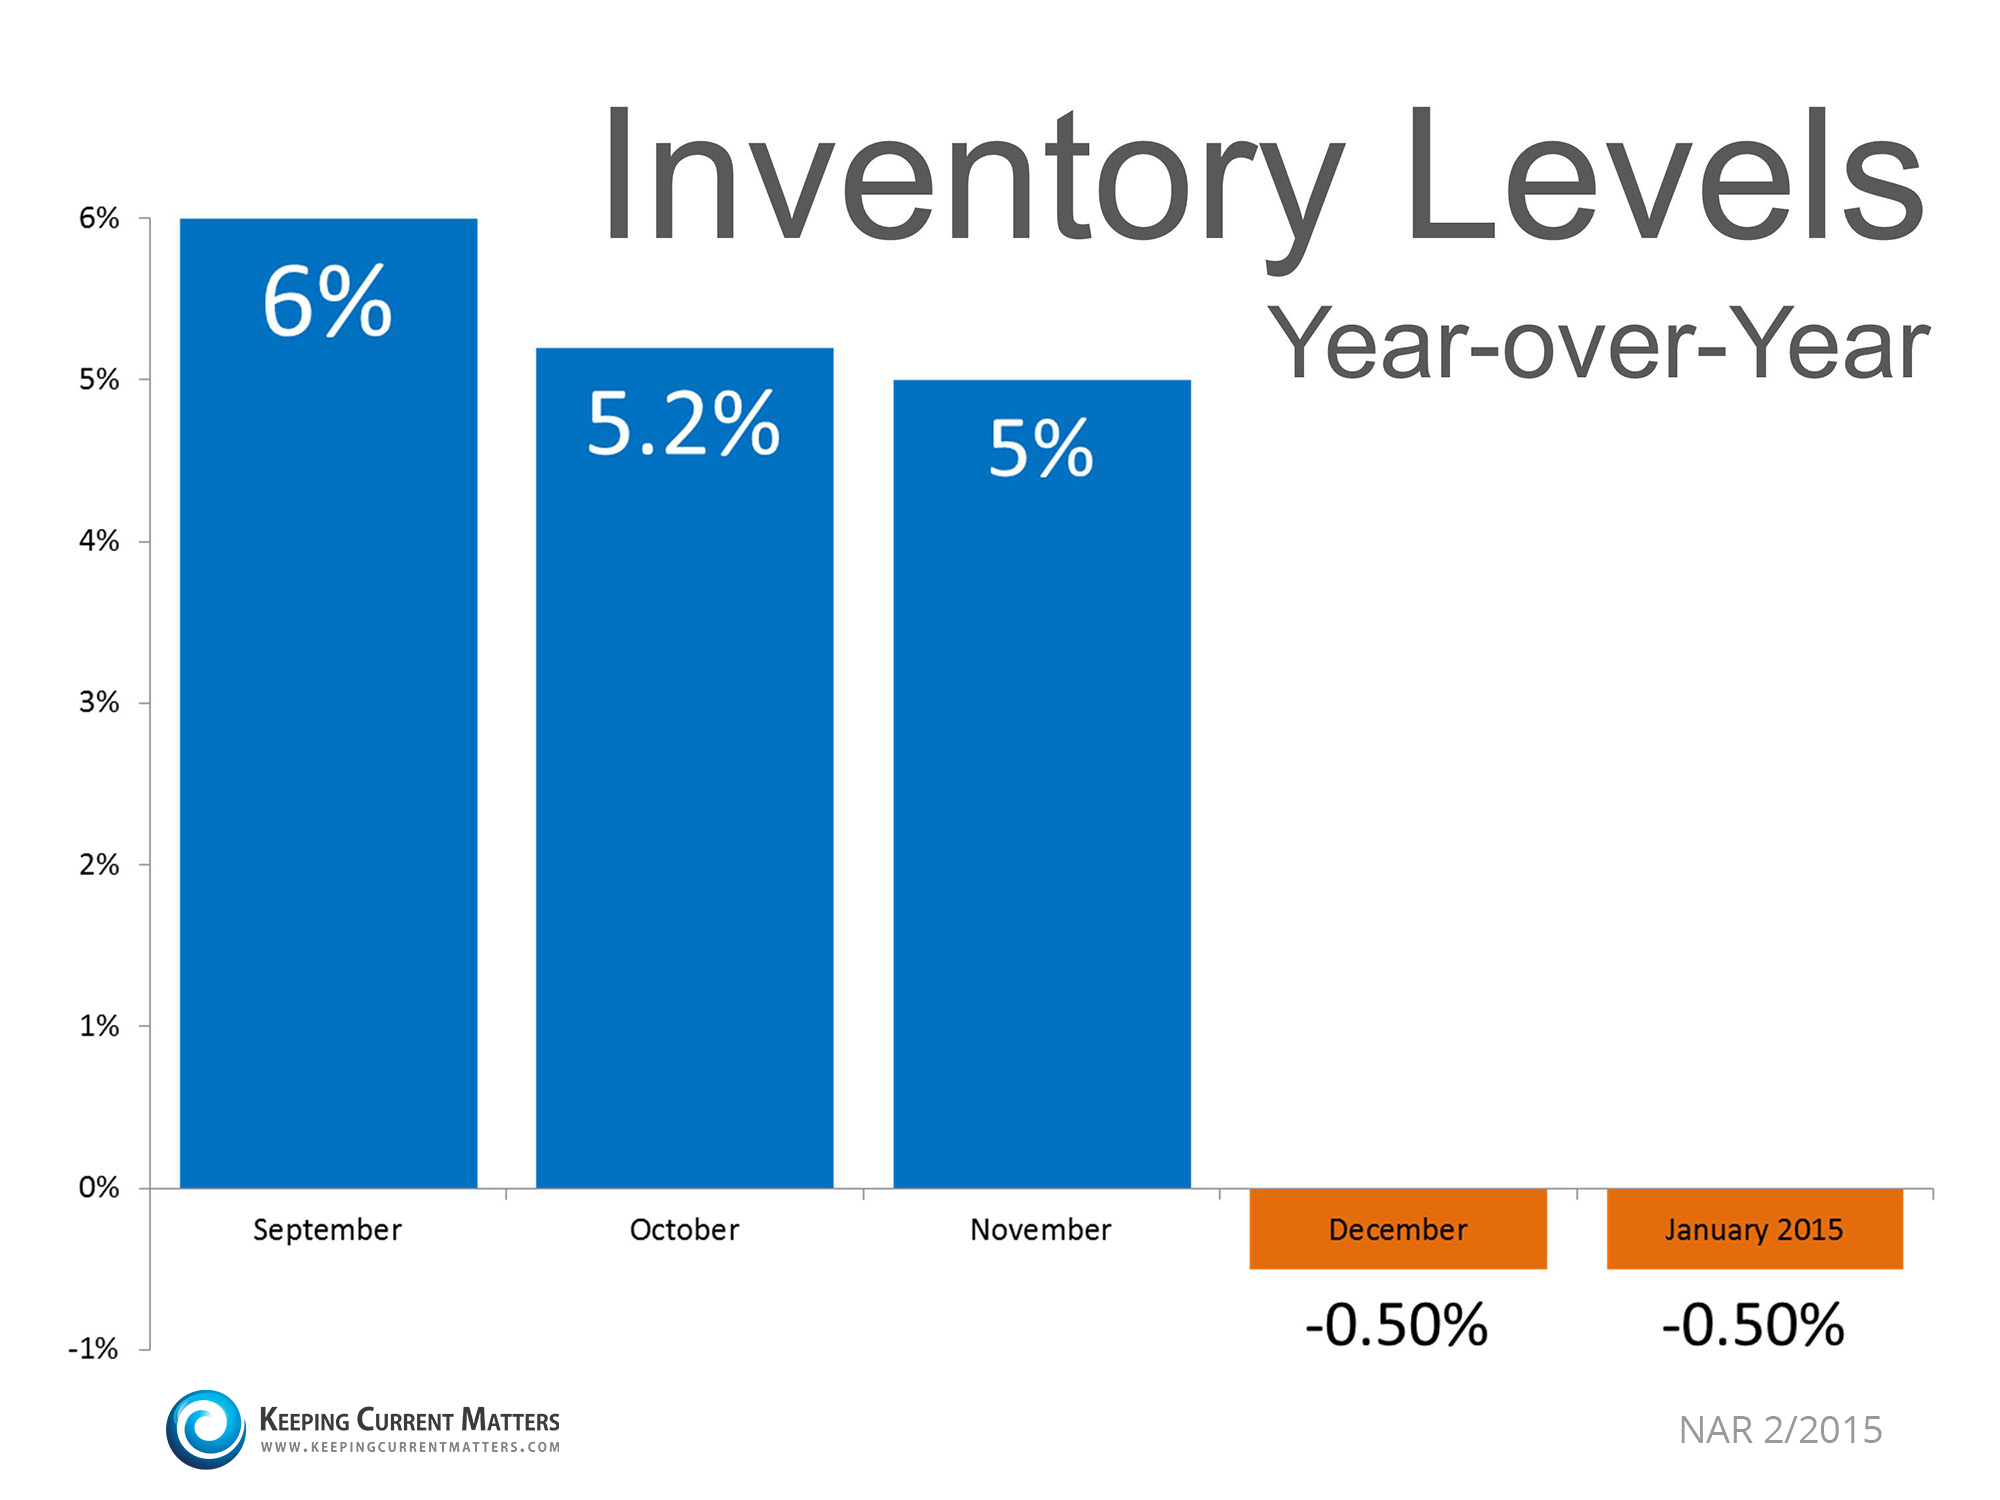 Inventory Levels Year-over-Year | Keeping Current Matters